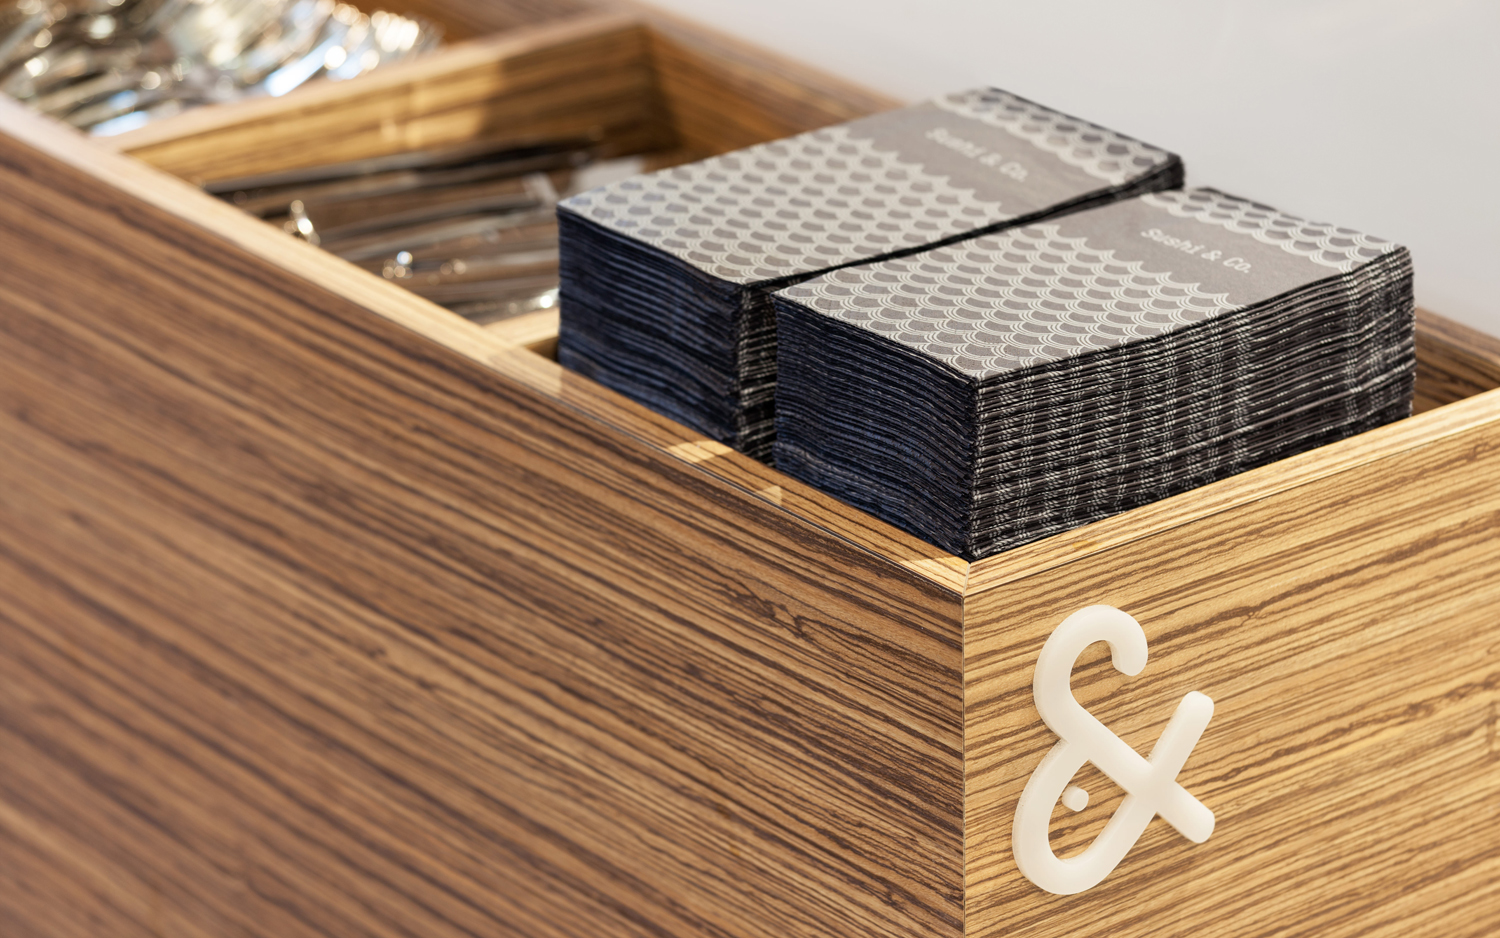 Visual identity and napkins for Baltic Sea cruise ship restaurant Sushi & Co. designed by Bond